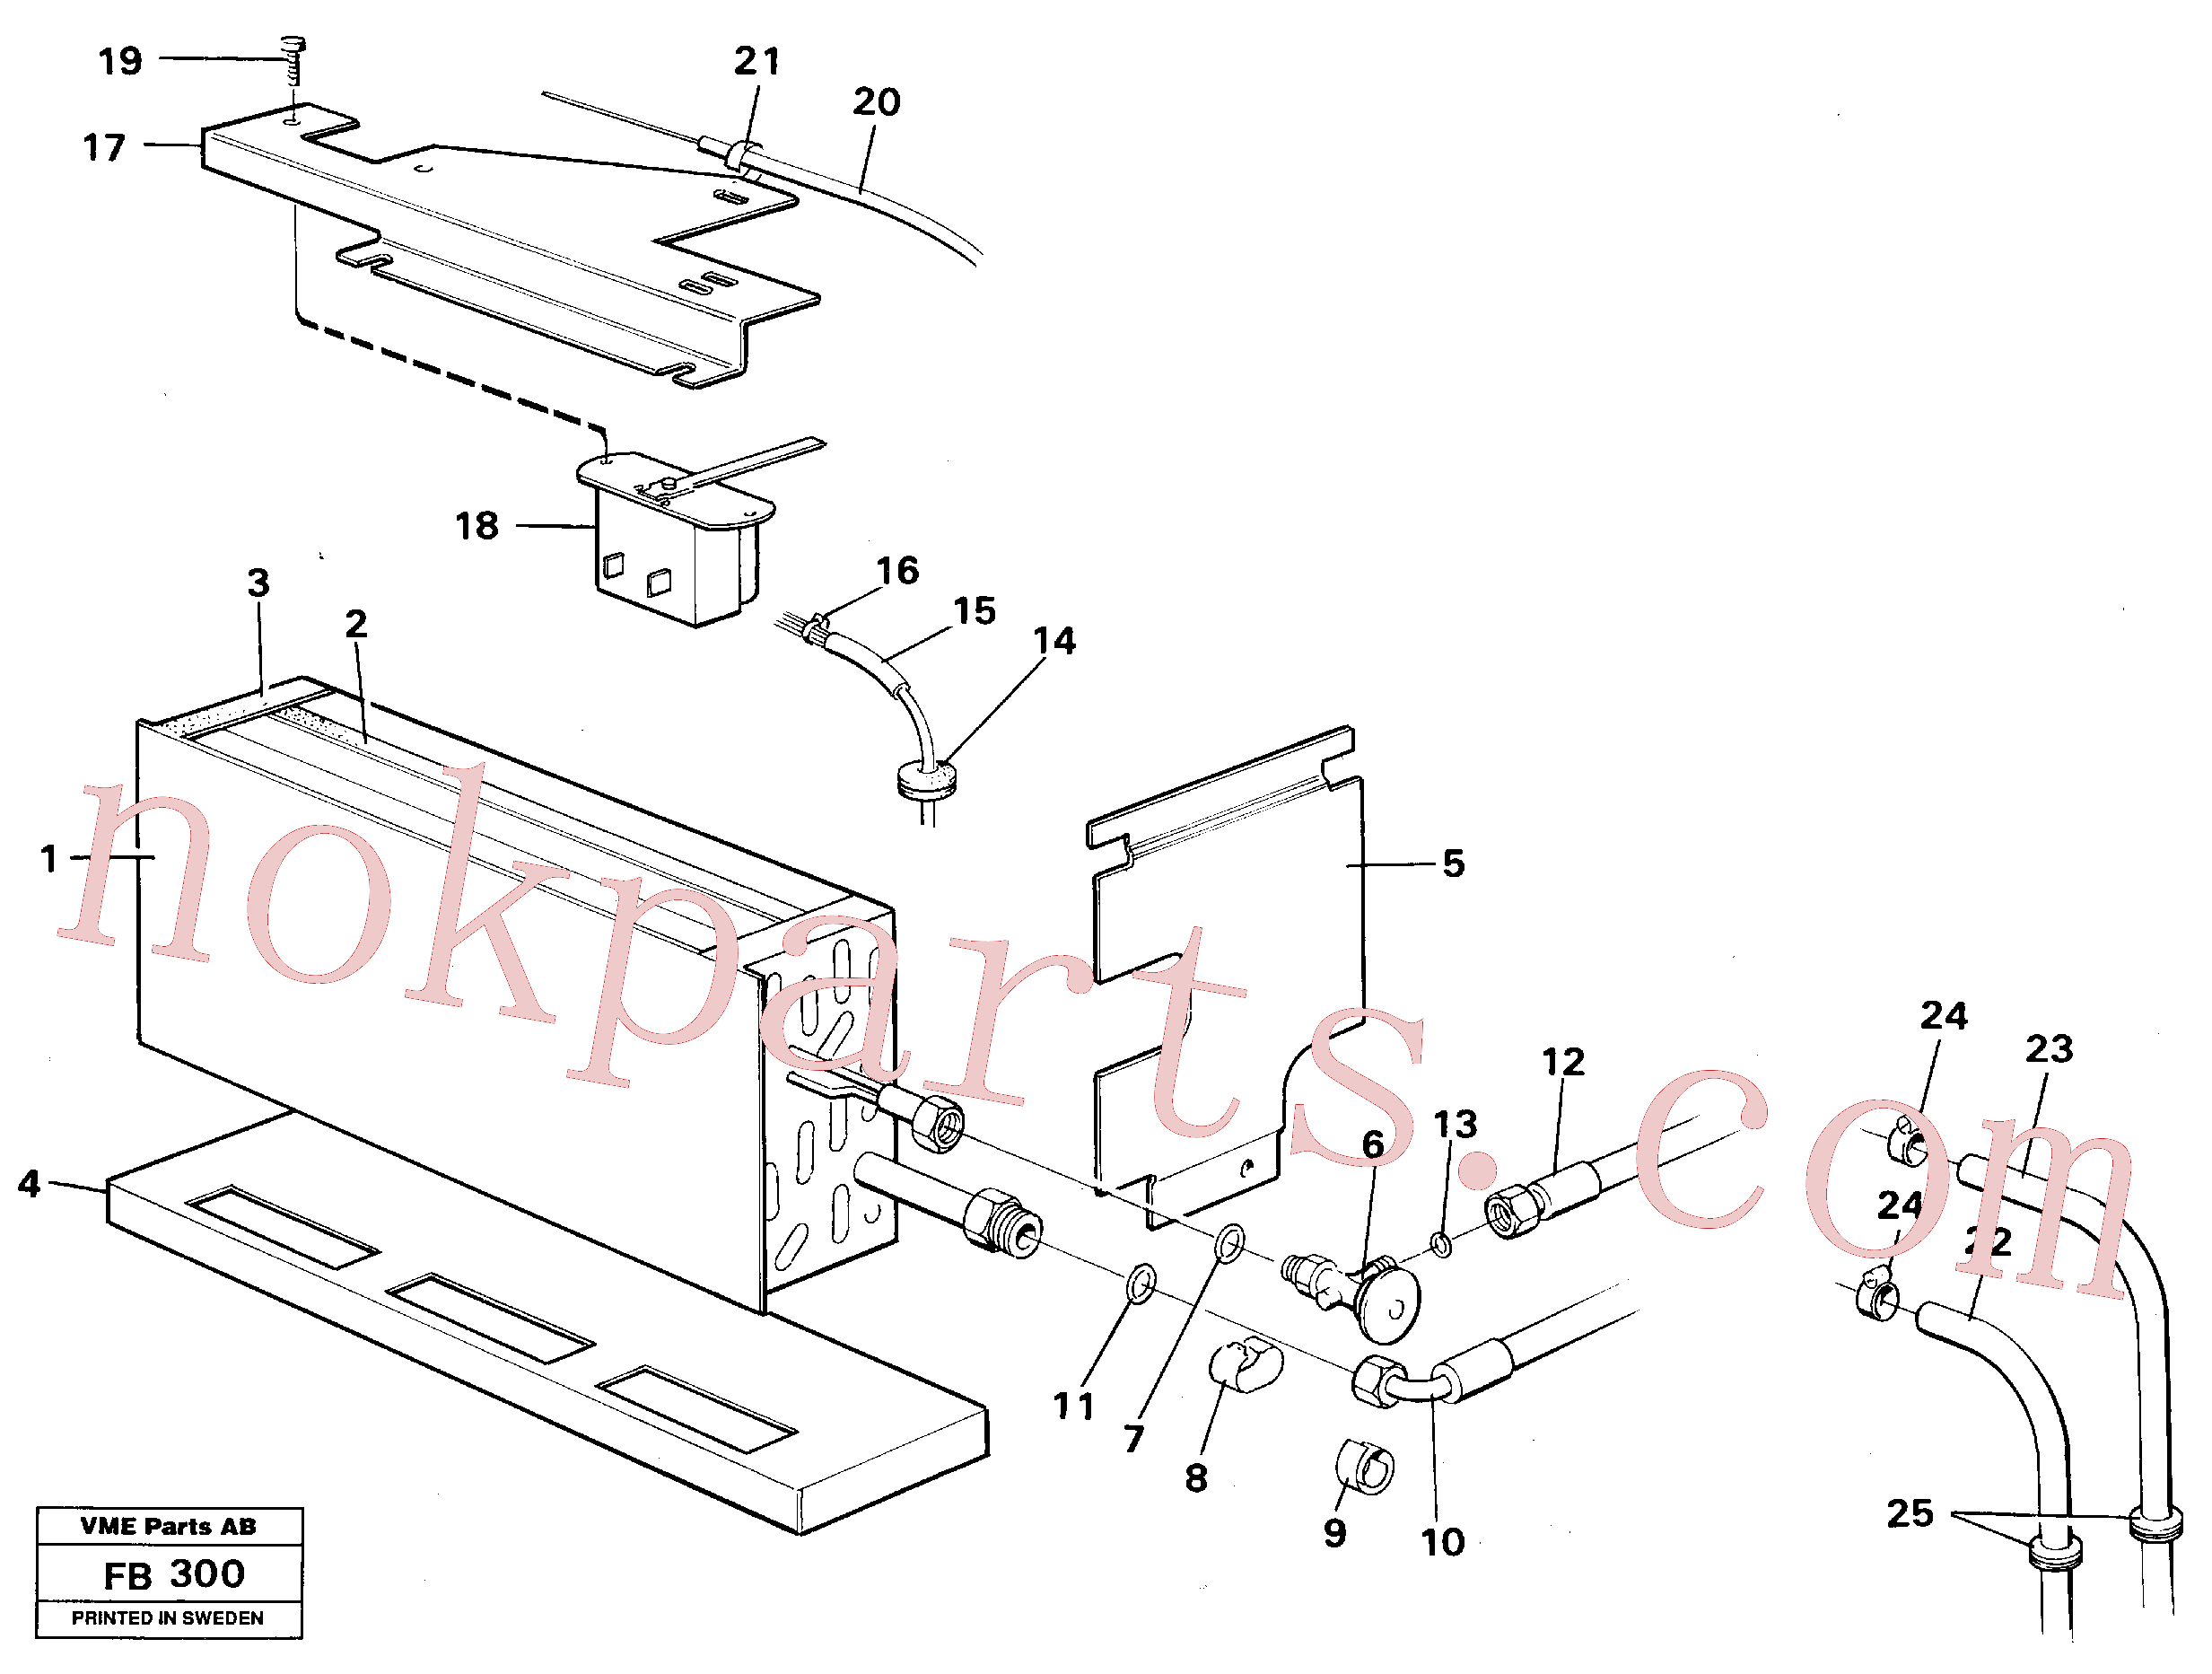 VOE942978 for Volvo Evaporator with fitting parts Cooling agent R12(FB300 assembly)